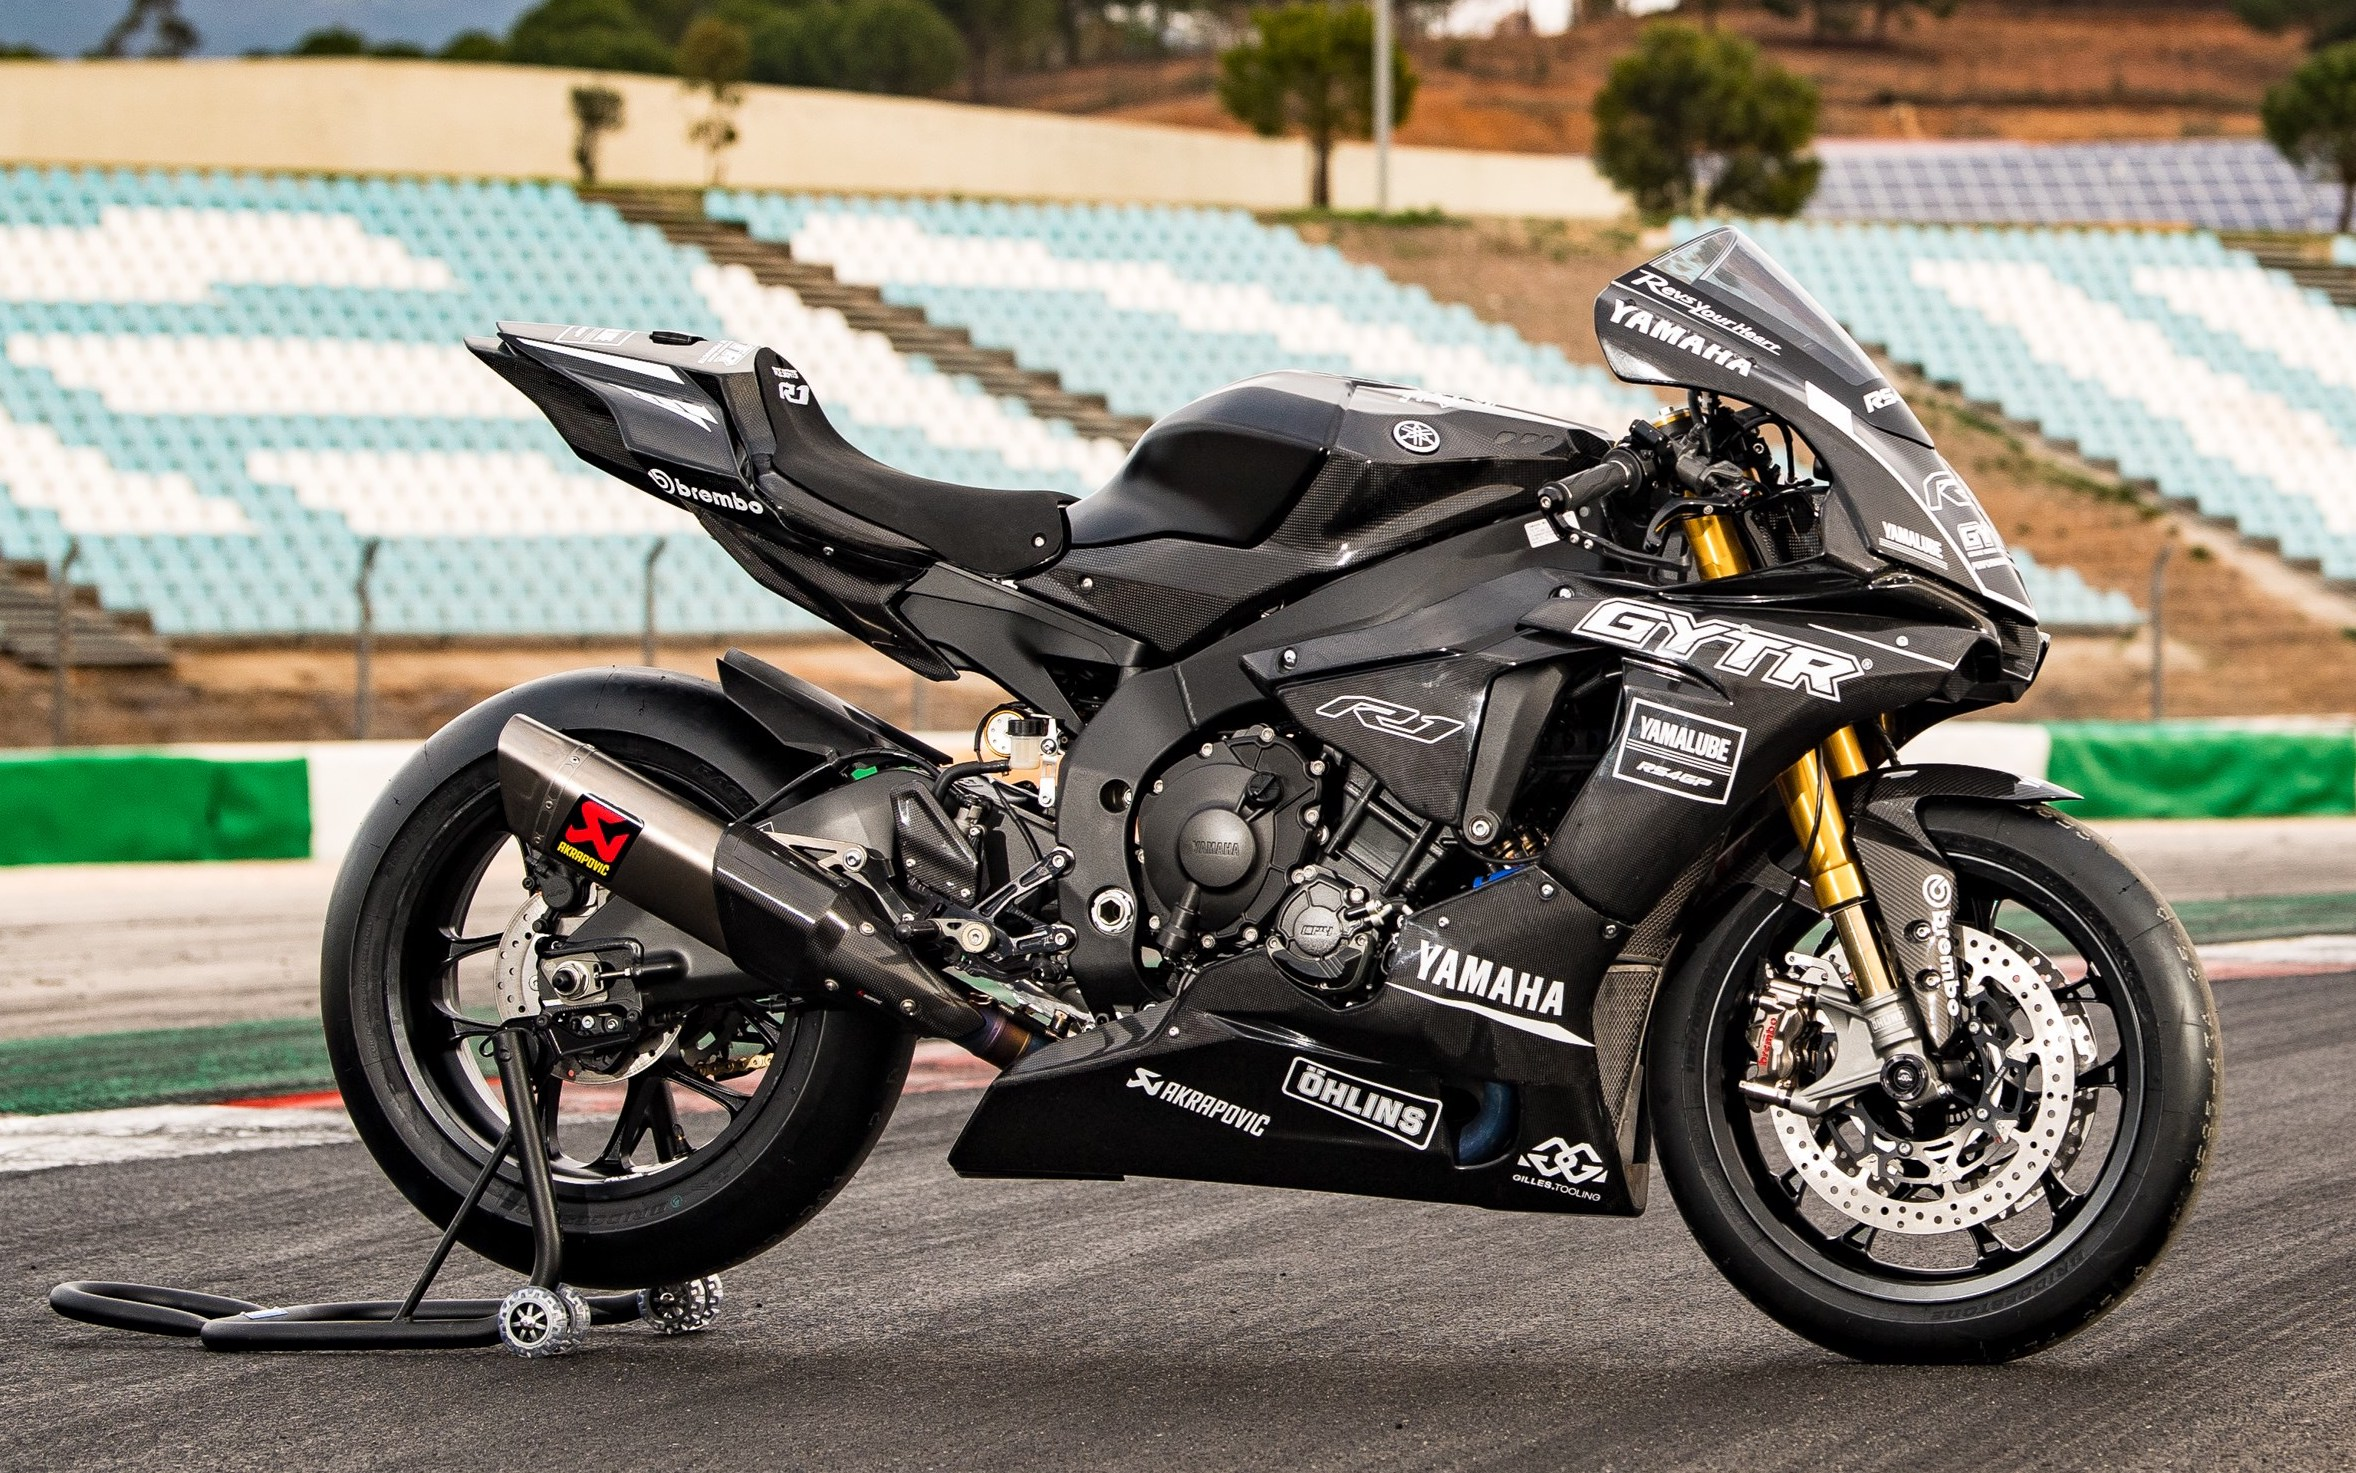 Don't expect a homologation special Yamaha YZF-R1